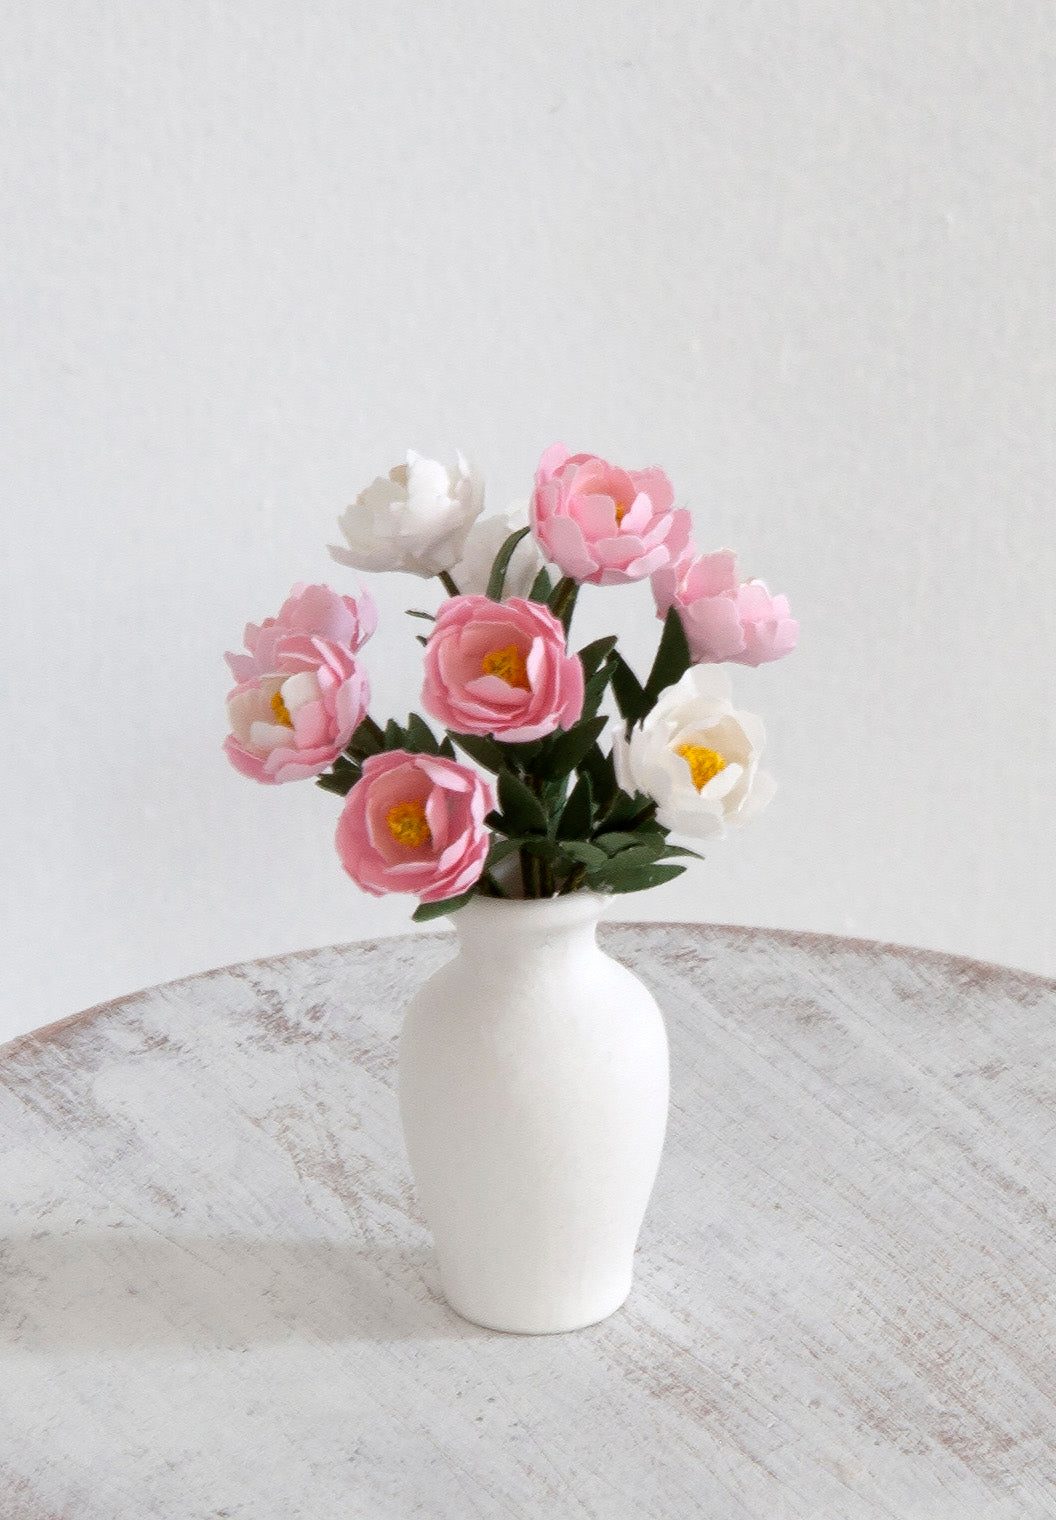 12th Scale Artisan White Ceramic Vase filled with Peonies